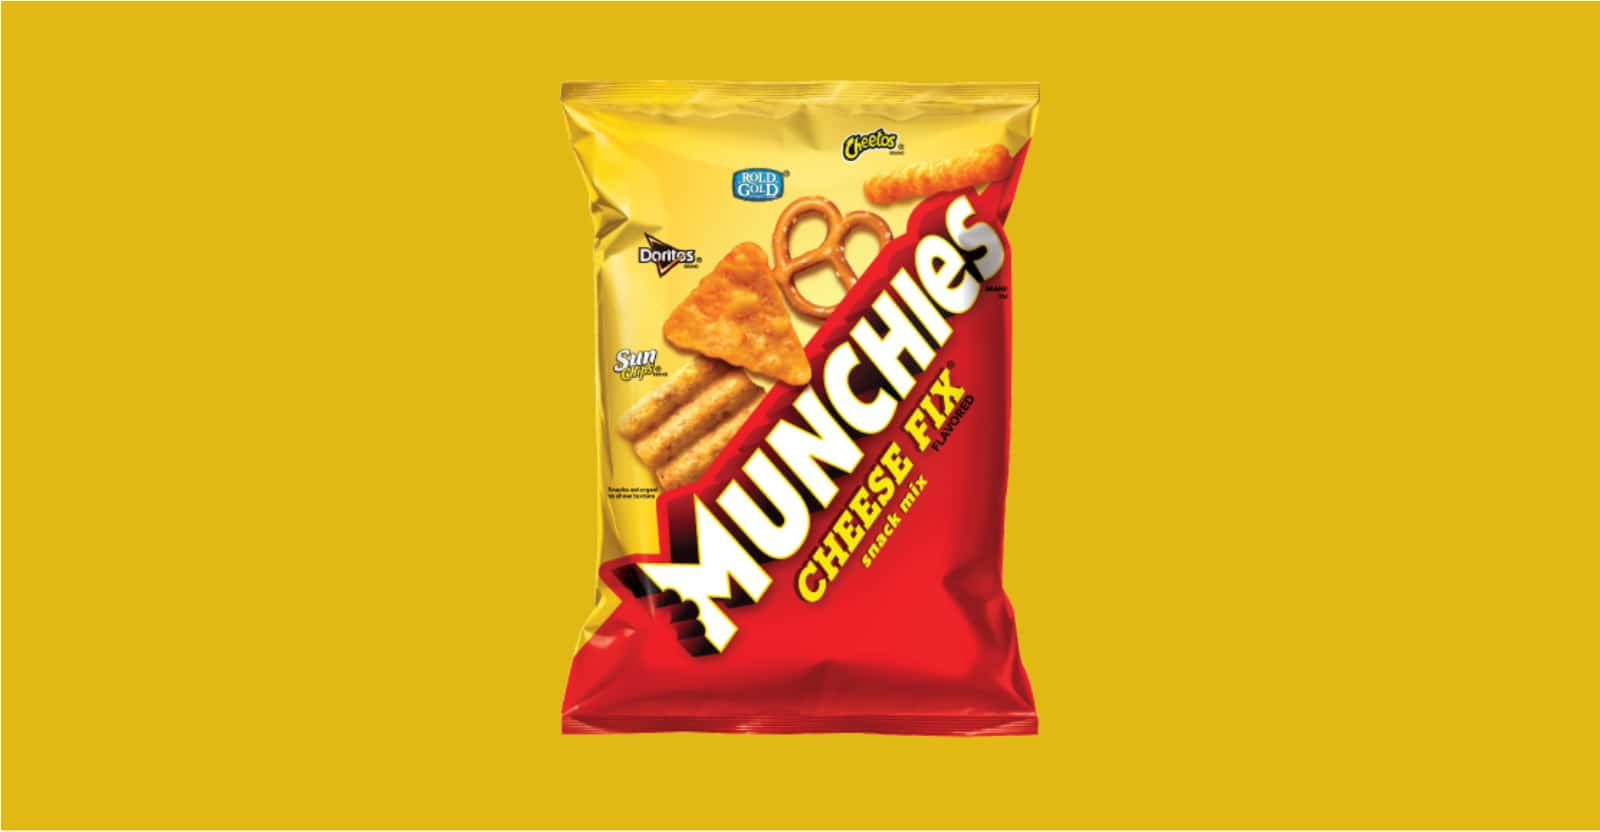 are munchies gluten-free